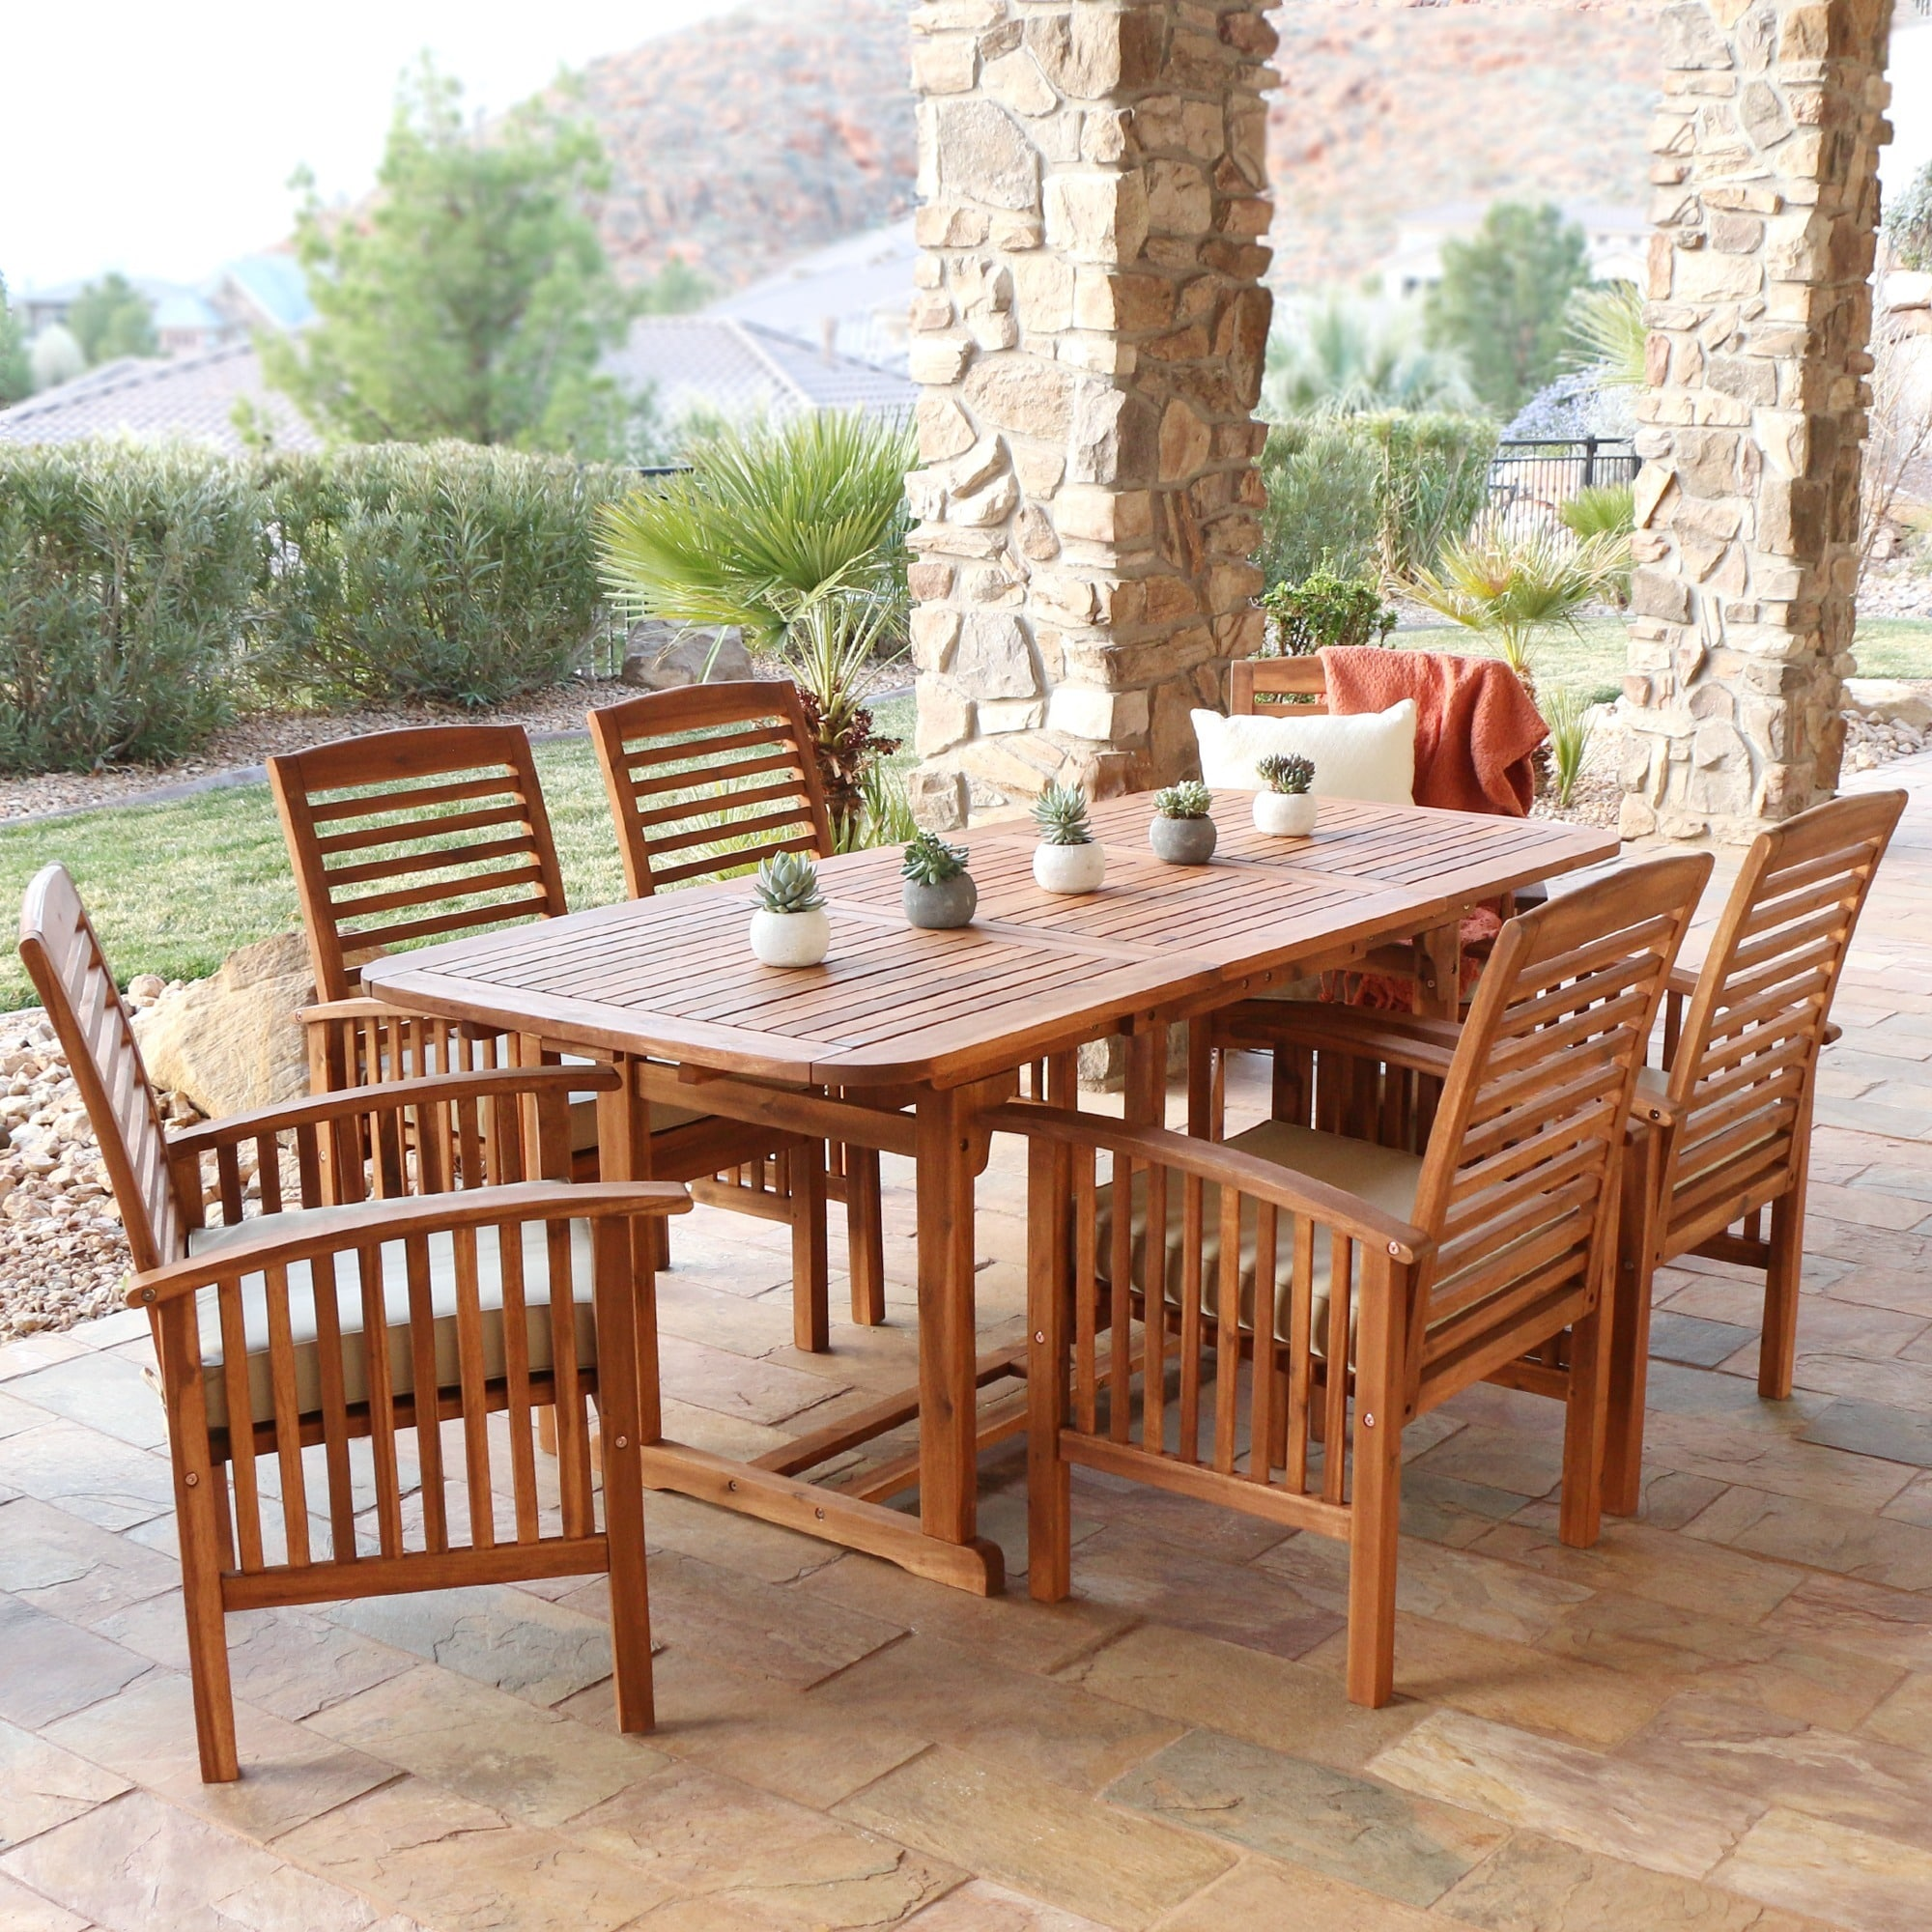 7 piece Acacia Wood Patio Dining Set Free Shipping Today